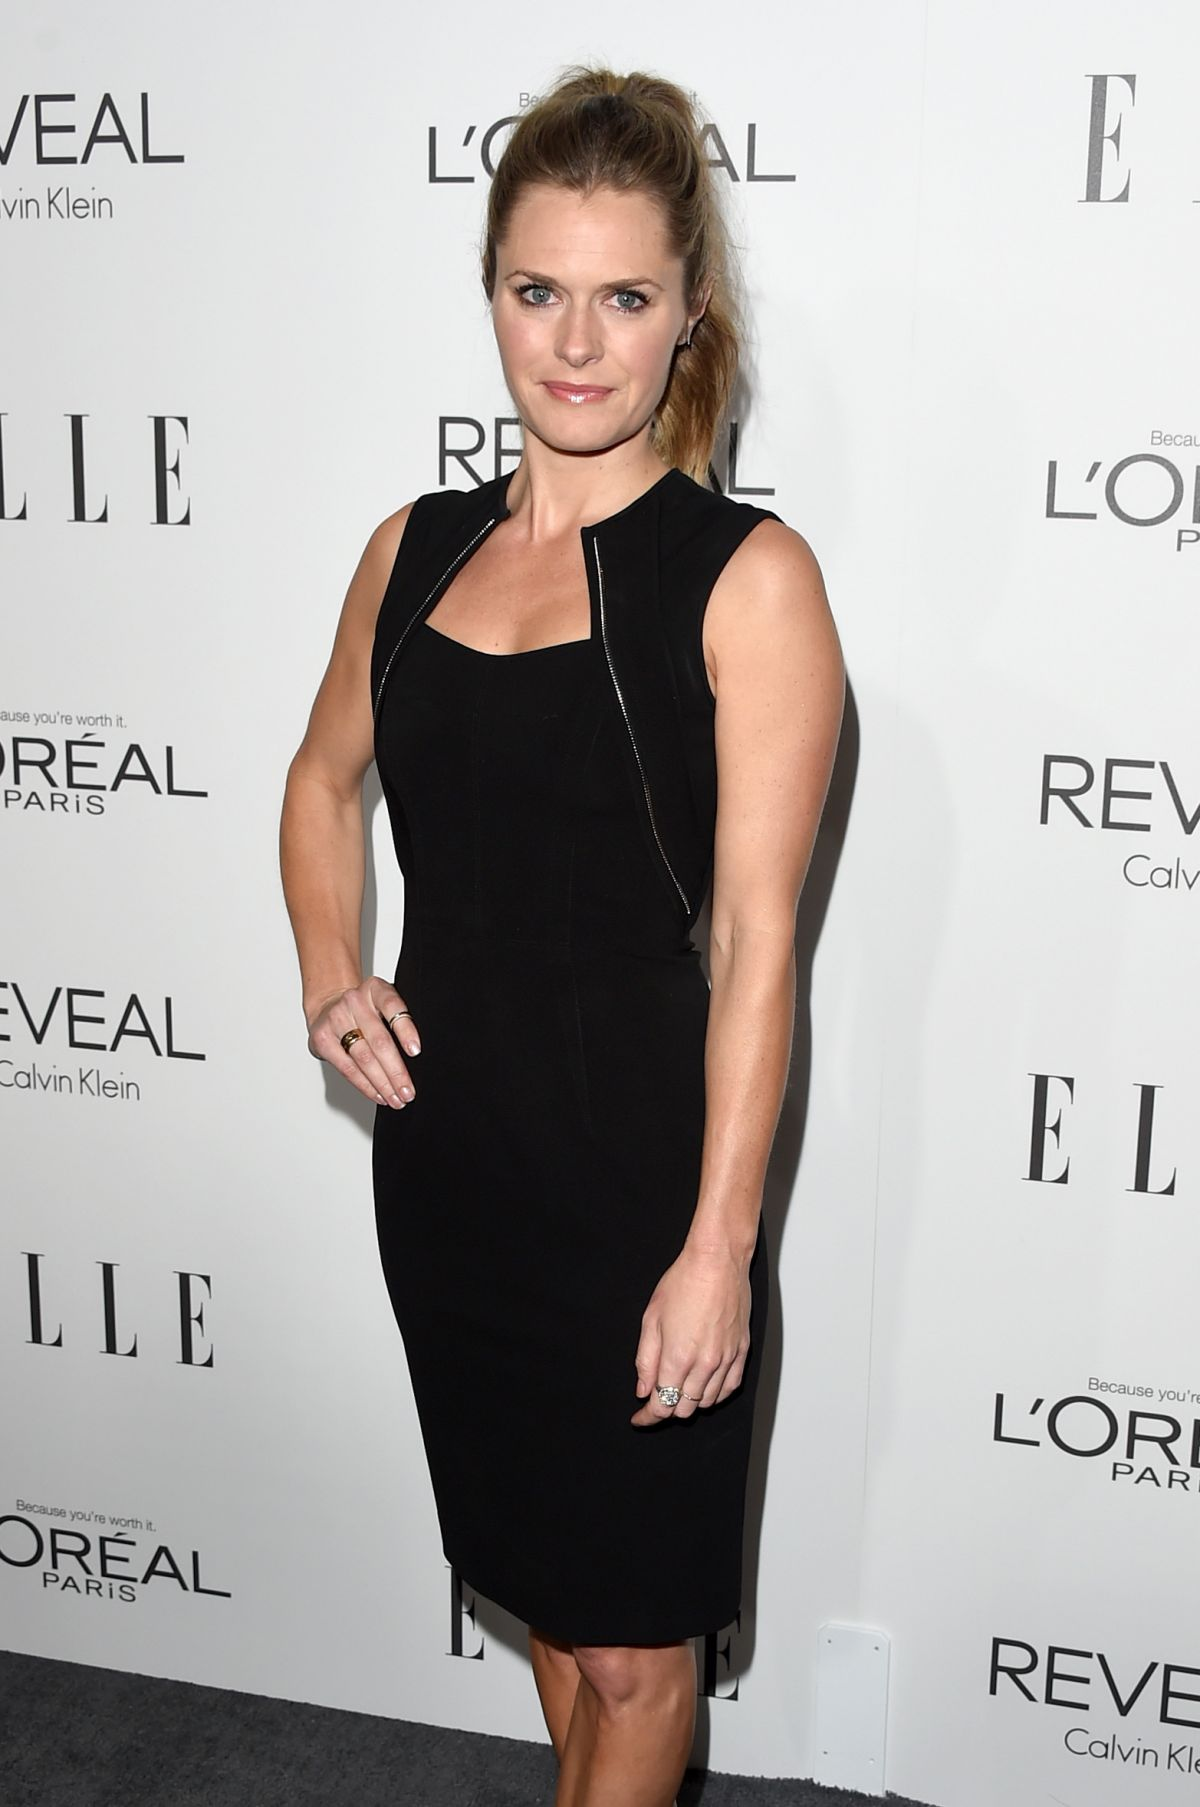 MAGGIE LAWSON at Elle's Women in Hollywood Awards in Los Angeles